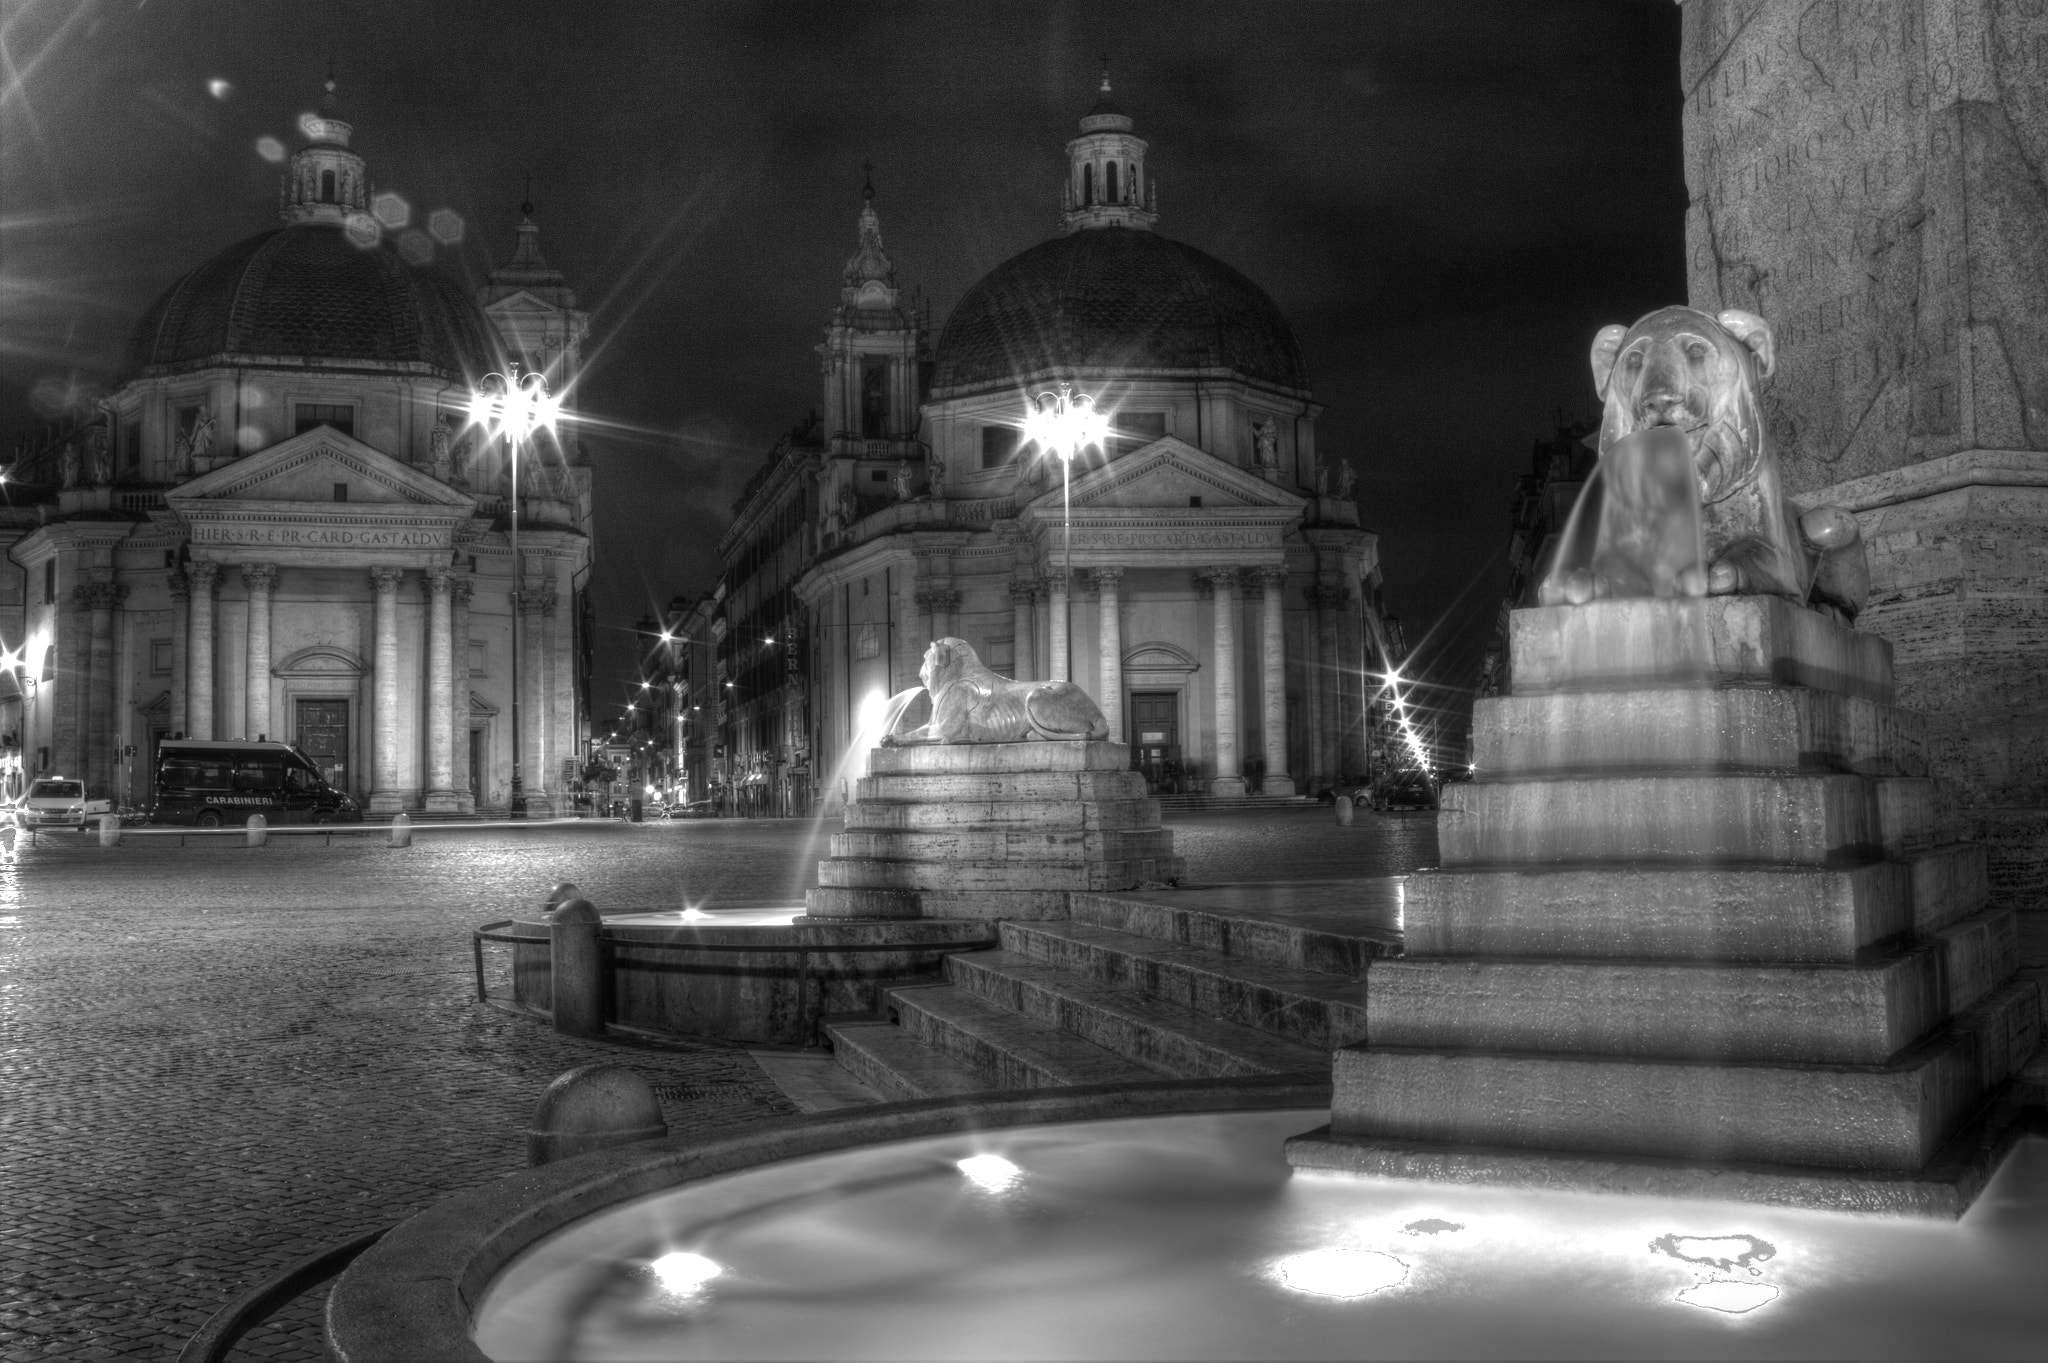 Photograph Piazza del Popolo by Giampiero Ranieri on 500px